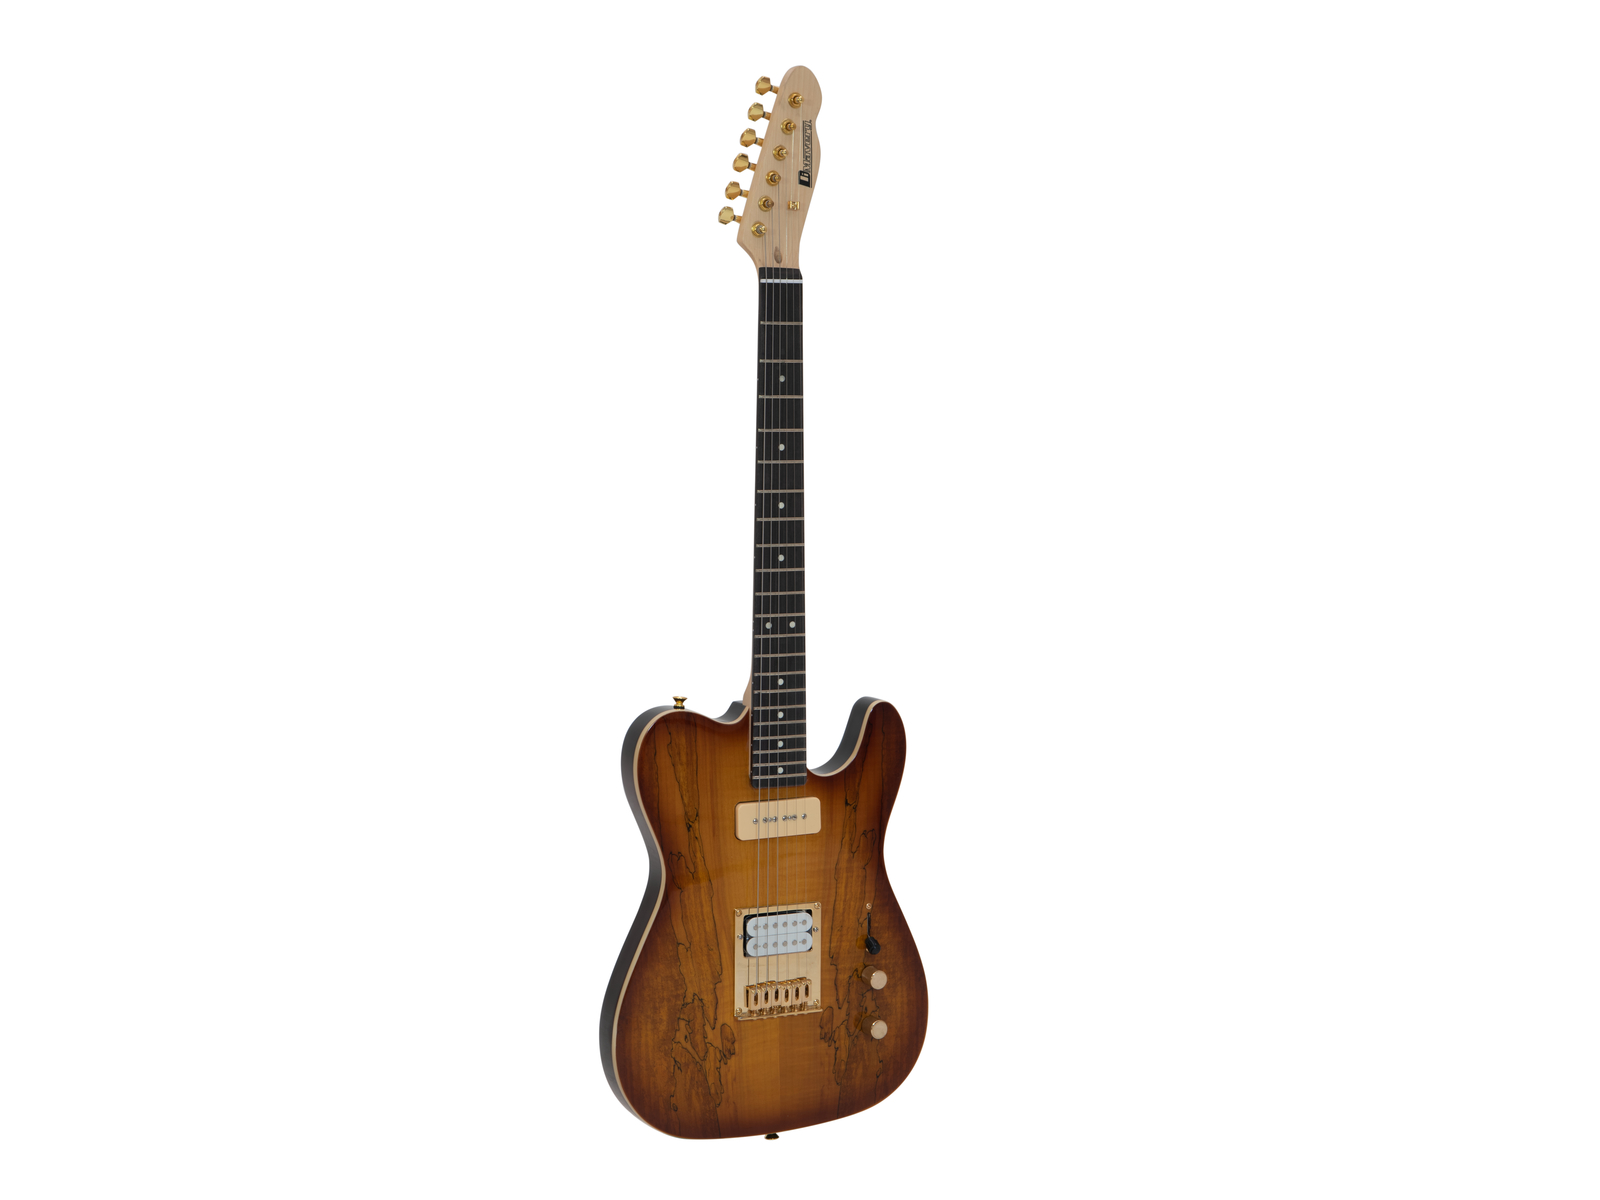 DIMAVERY TL-501 Prestigio E-Guitar, Spalted Maple